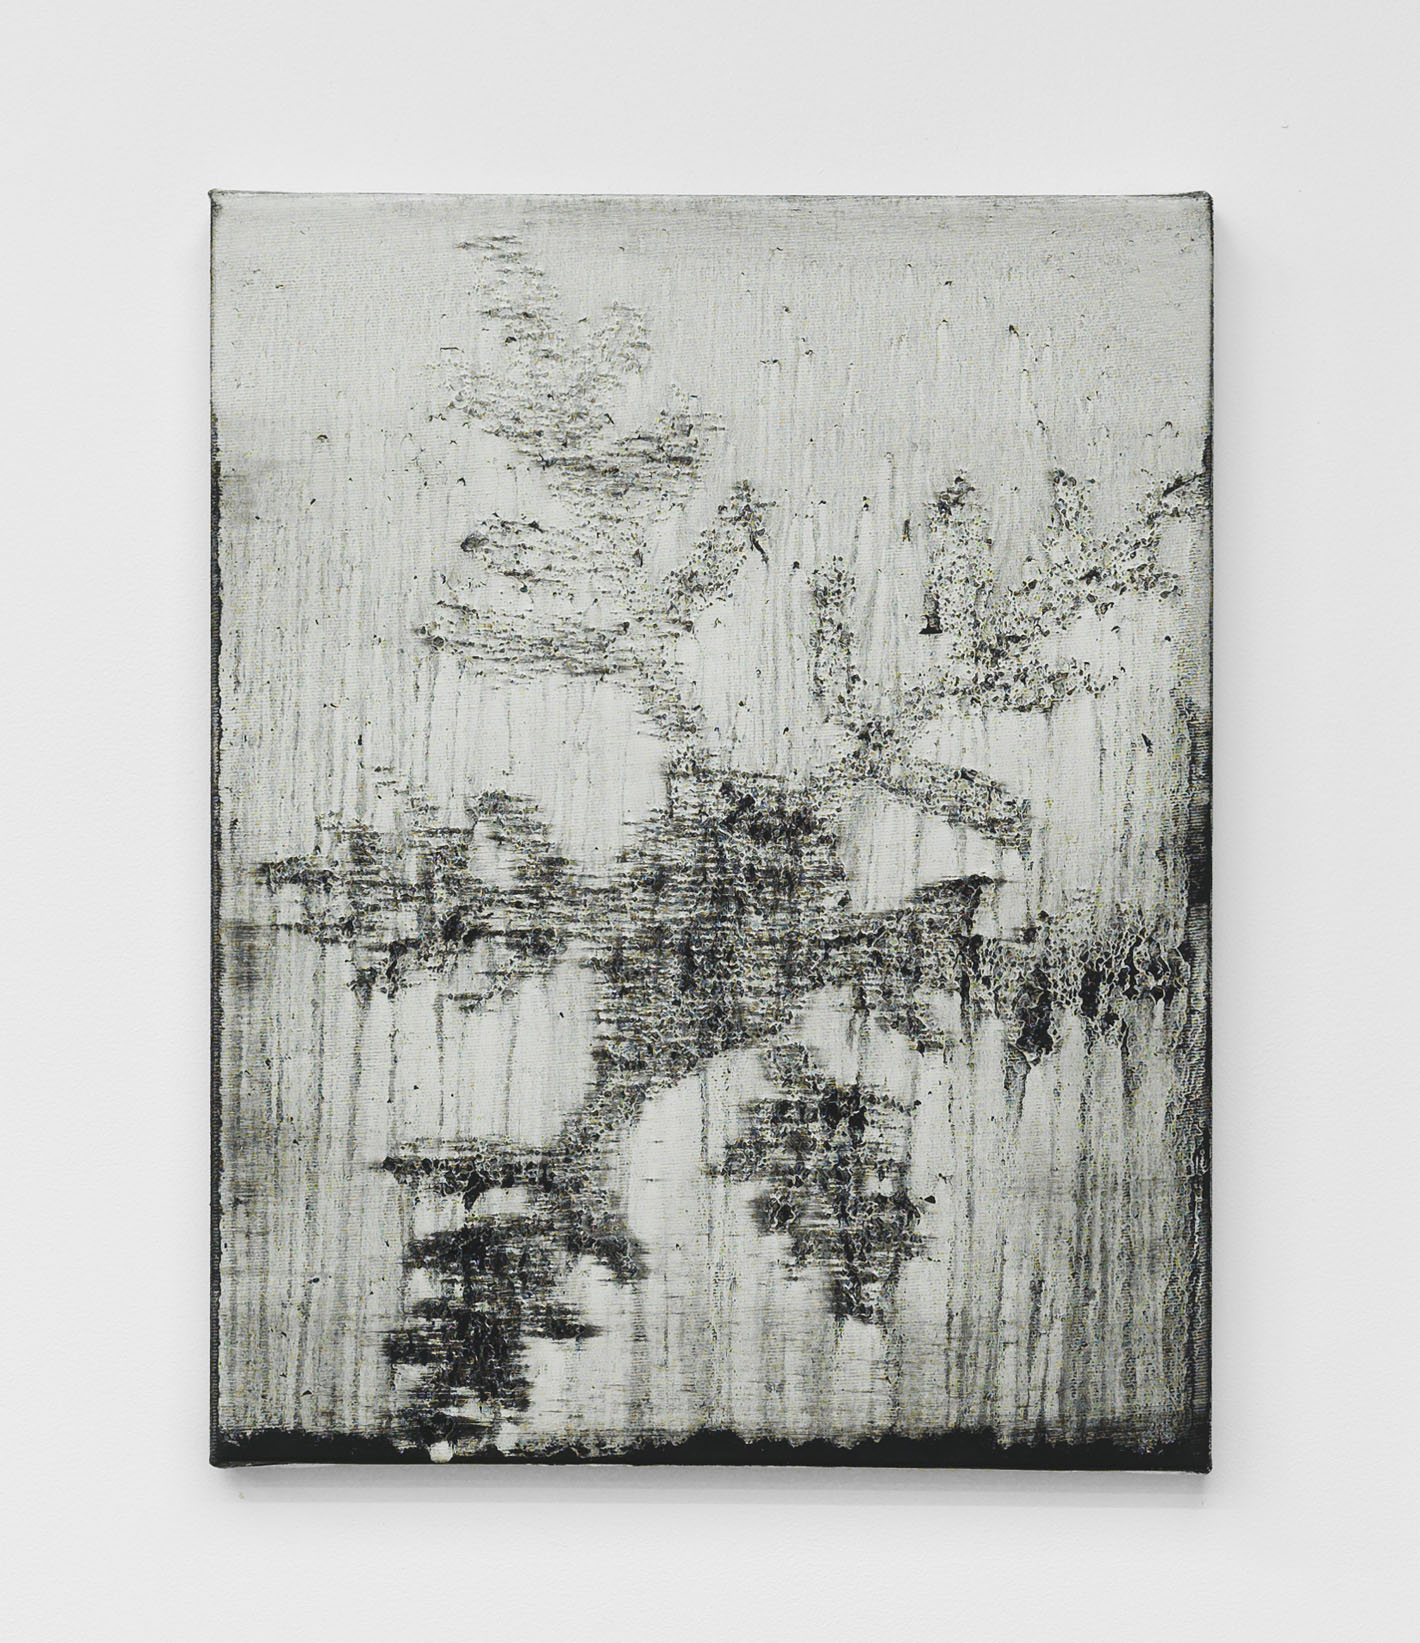 Alex Kwartler, Snowflake (To the Harbormaster, for ML), 2018, oil and pumice on canvas, 14h x 11w in.